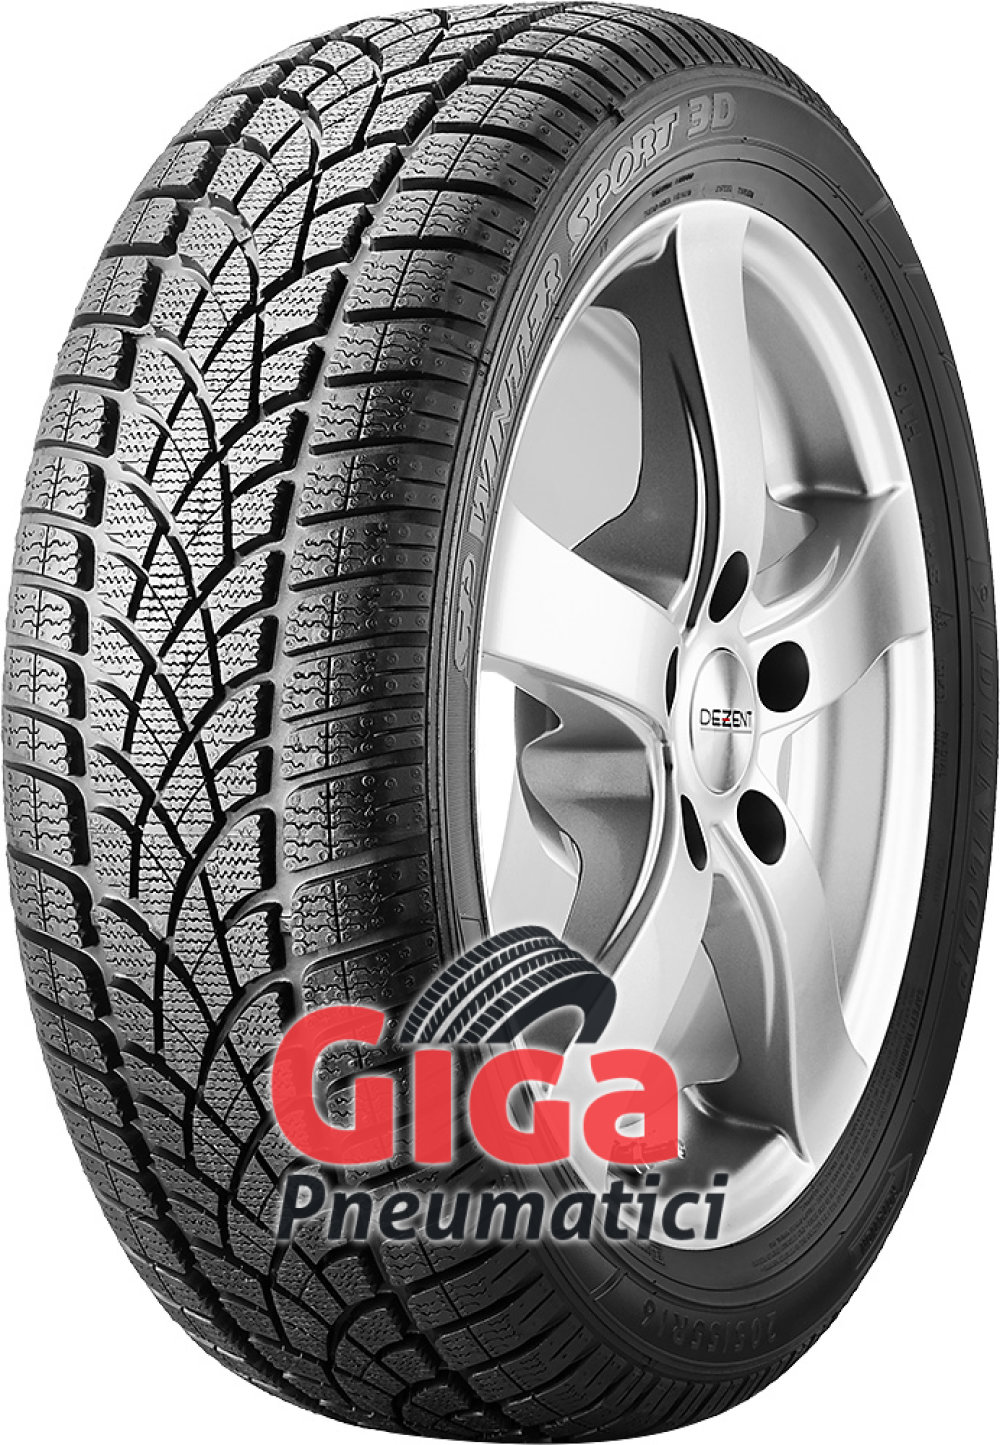 Dunlop SP Winter Sport 3D ( 195/60 R16C 99/97T 6PR )